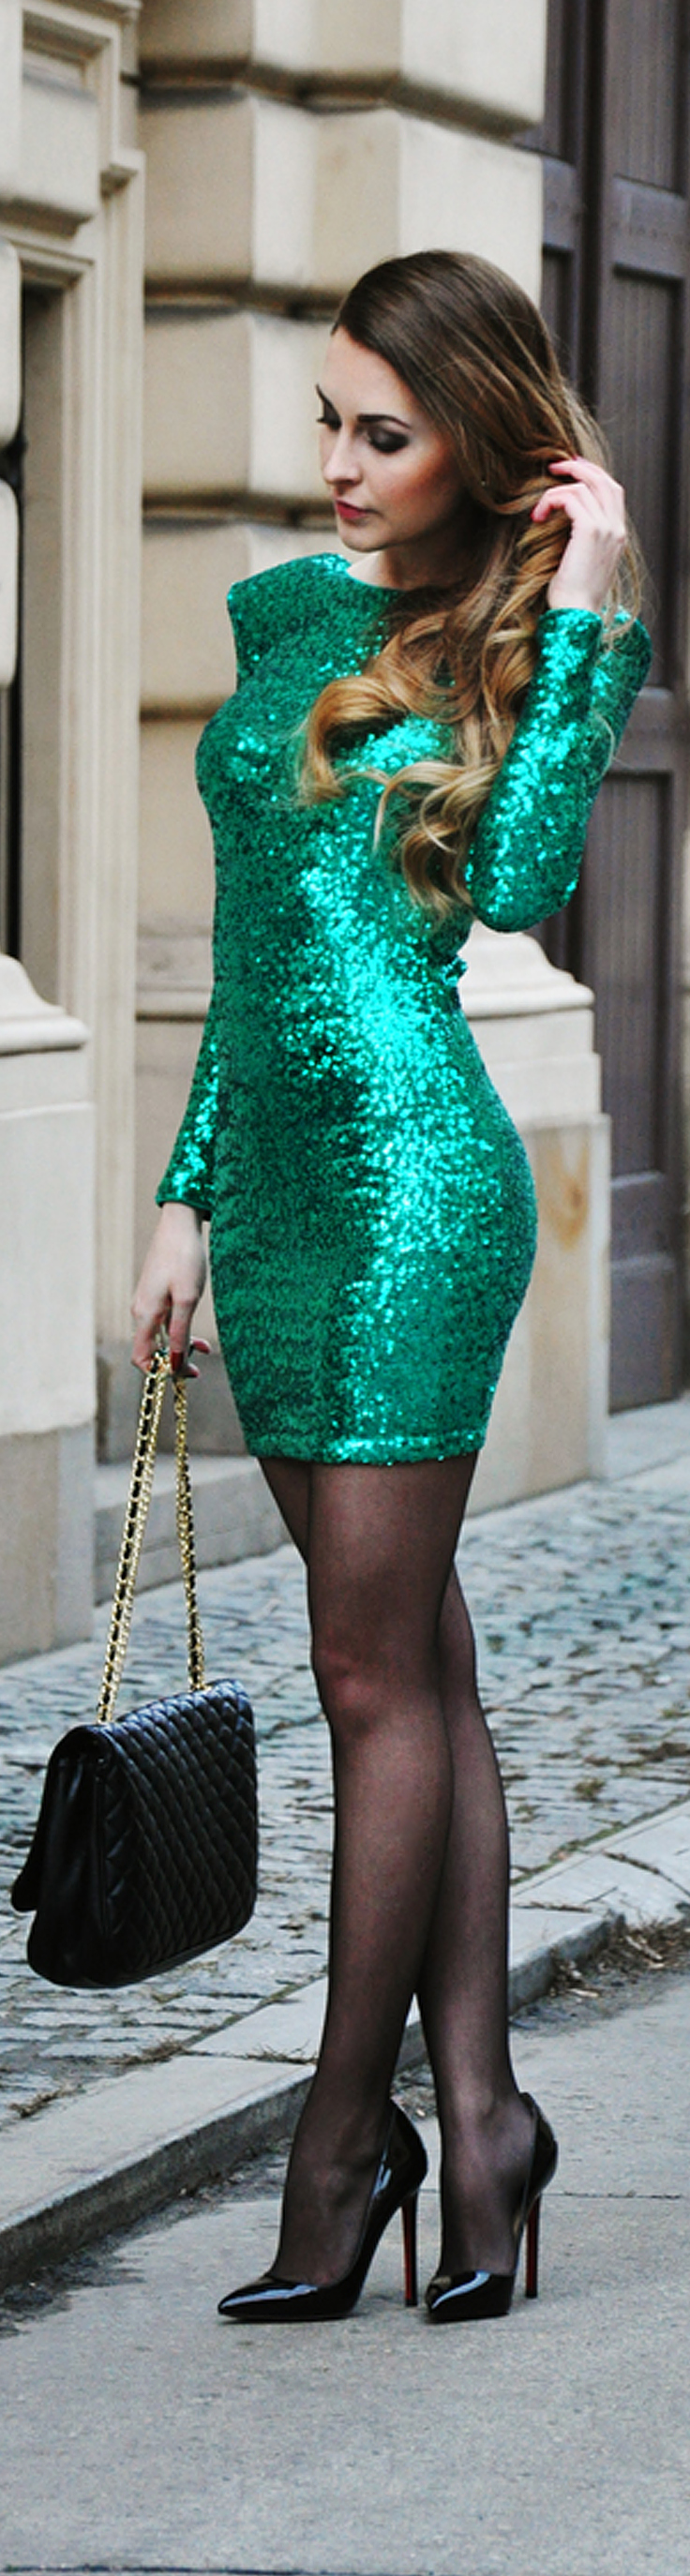 Party time | Karina in Fashionland | Beauty & Style | Pinterest ...